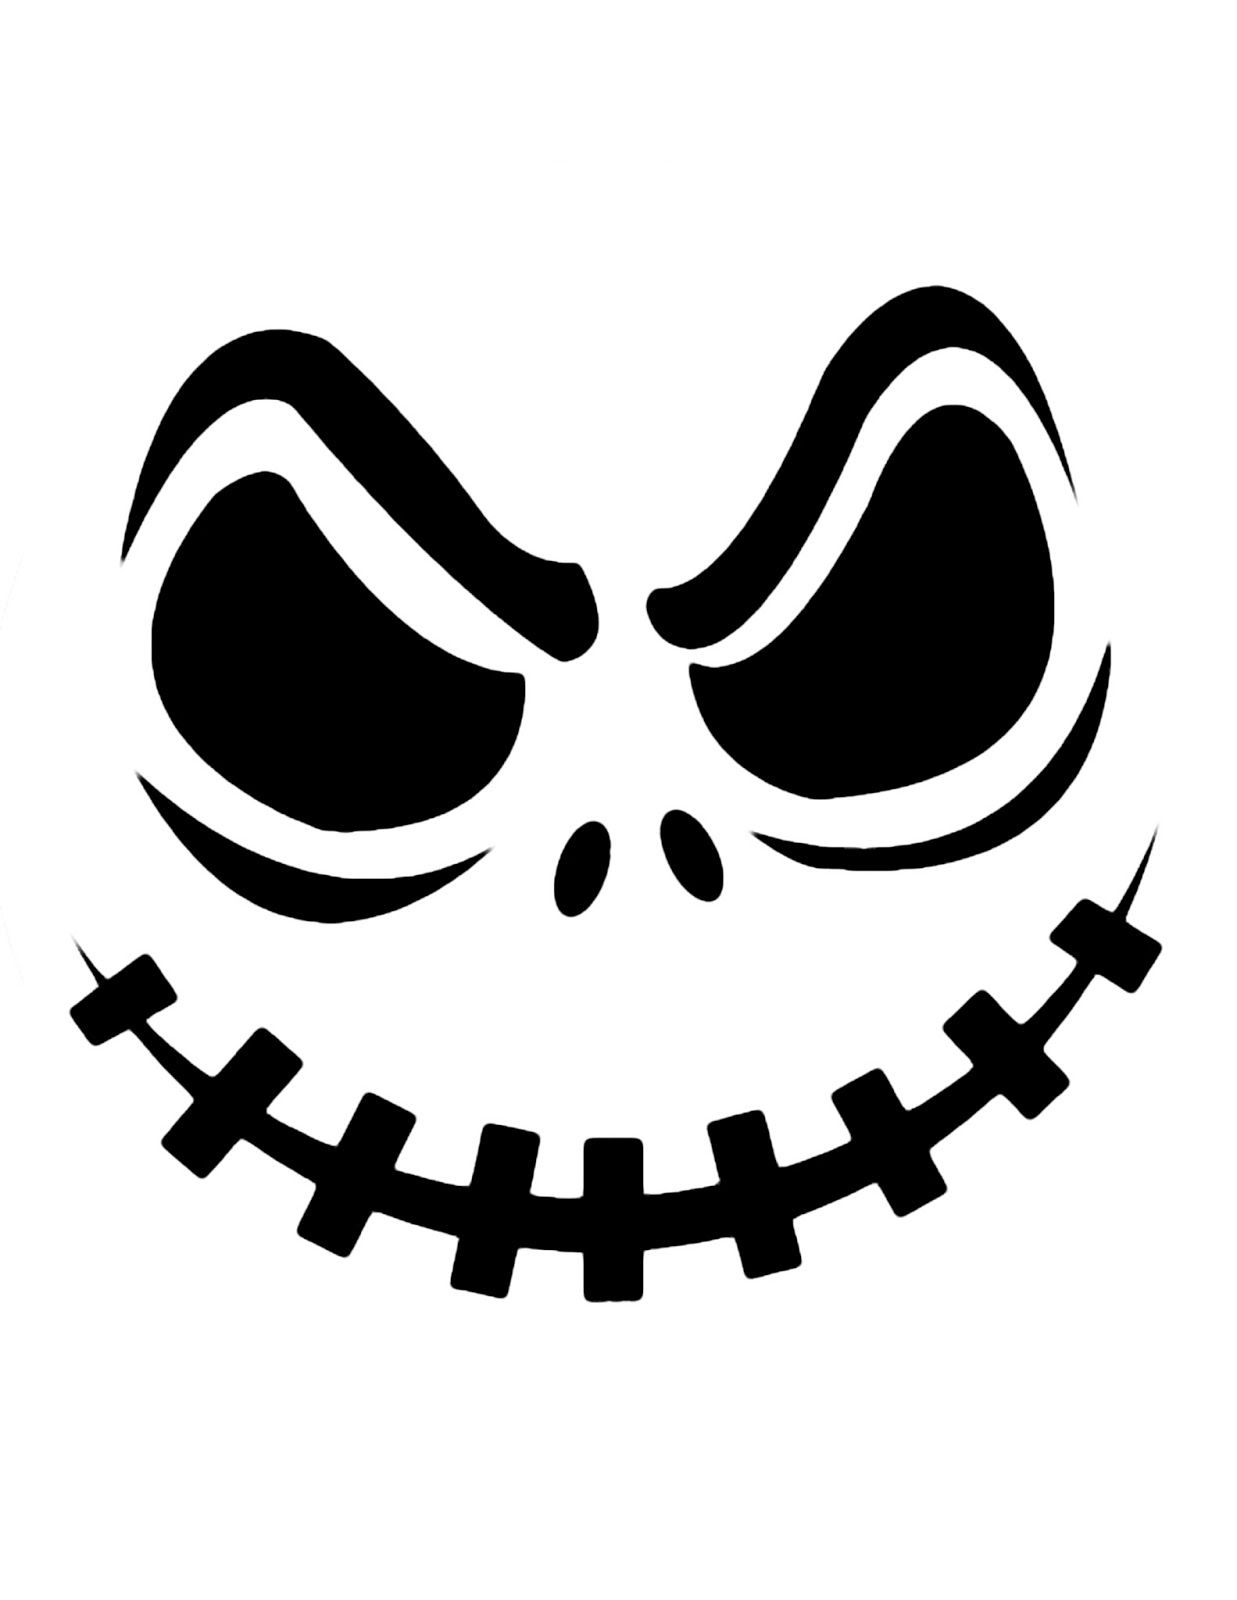 Top printable scary face pumpkin carving pattern design stencils ...